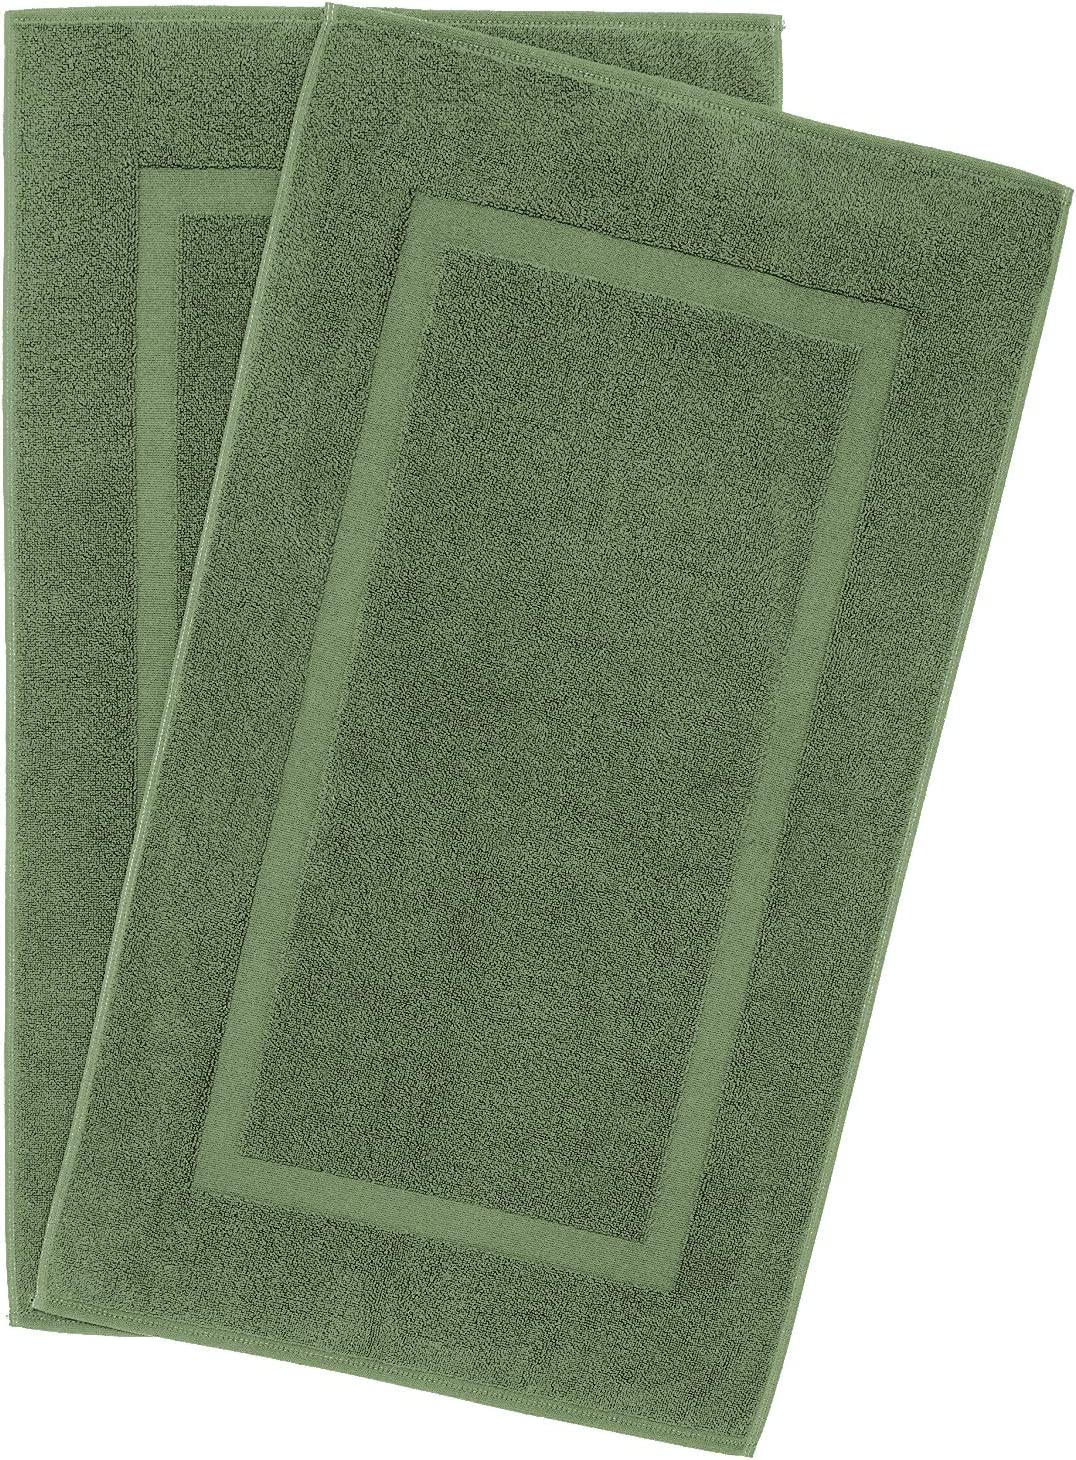 900 GSM Machine Washable 20x34 Inches 2-Pack Banded Bath Mats, Luxury Hotel & Spa Quality, 100% Ring Spun Genuine Cotton, Maximum Softness & Absorbency by United Home Textile, Sage Green: Kitchen & Dining